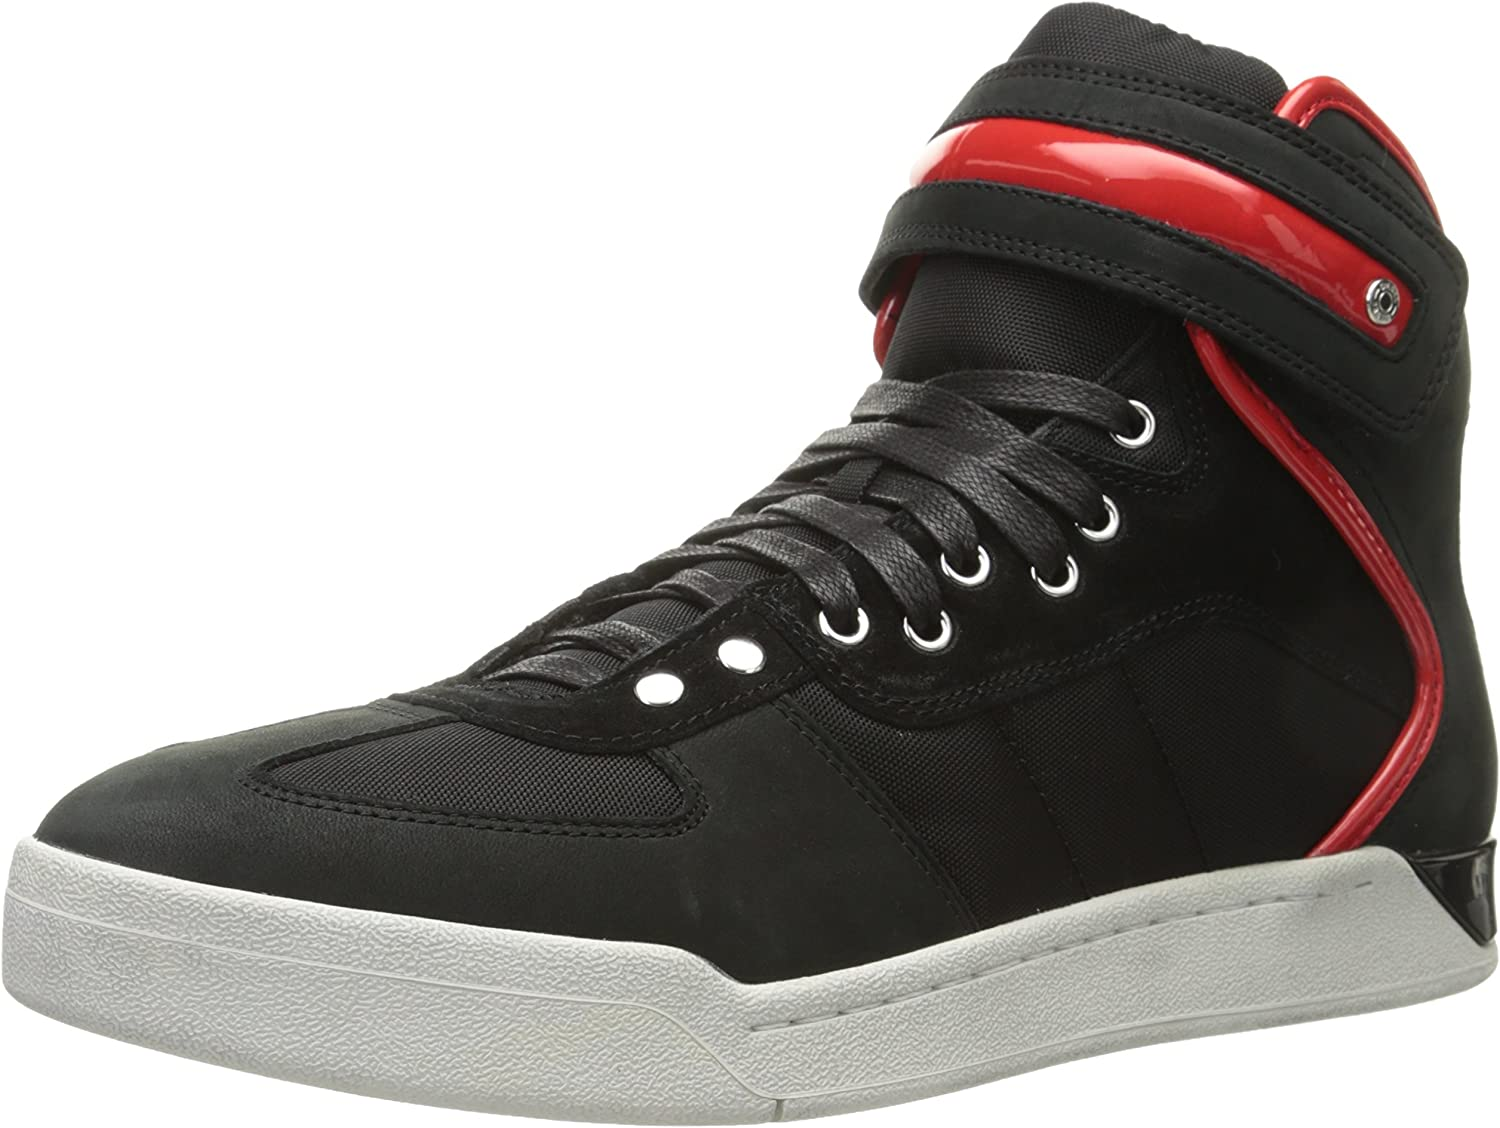 DIESEL - Sneakers - Men - Black S-Seyene High-Top Laces Velcro Sneakers with White Sole for men